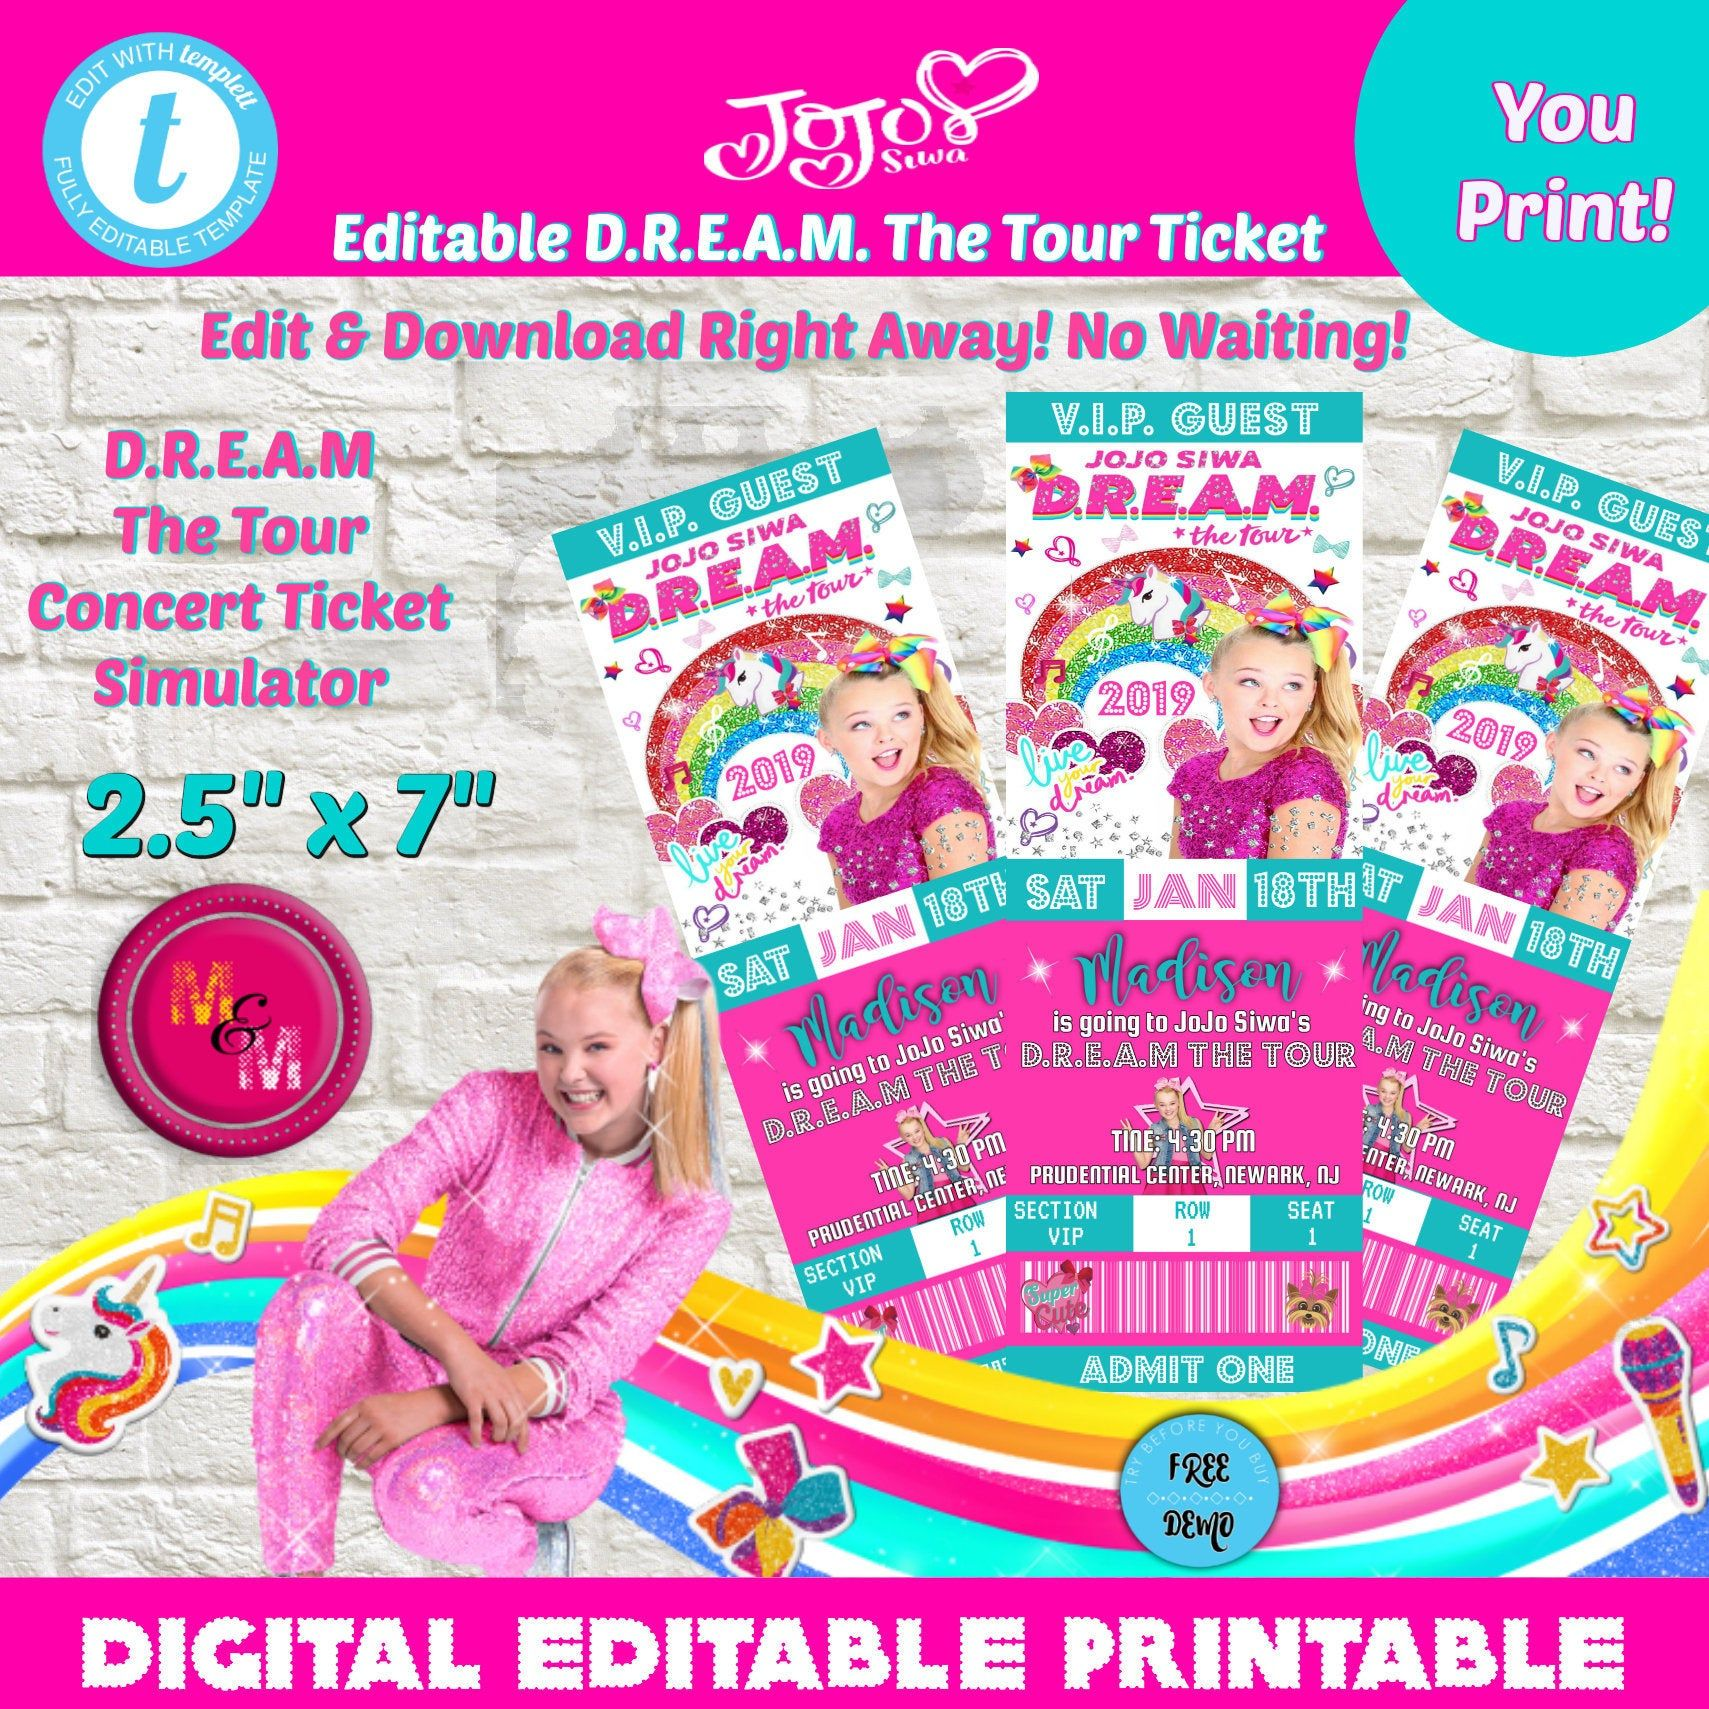 f1e9dbe54dbe5c747d5ea26803779376 - How To Get Jojo Siwa To Come To Your House